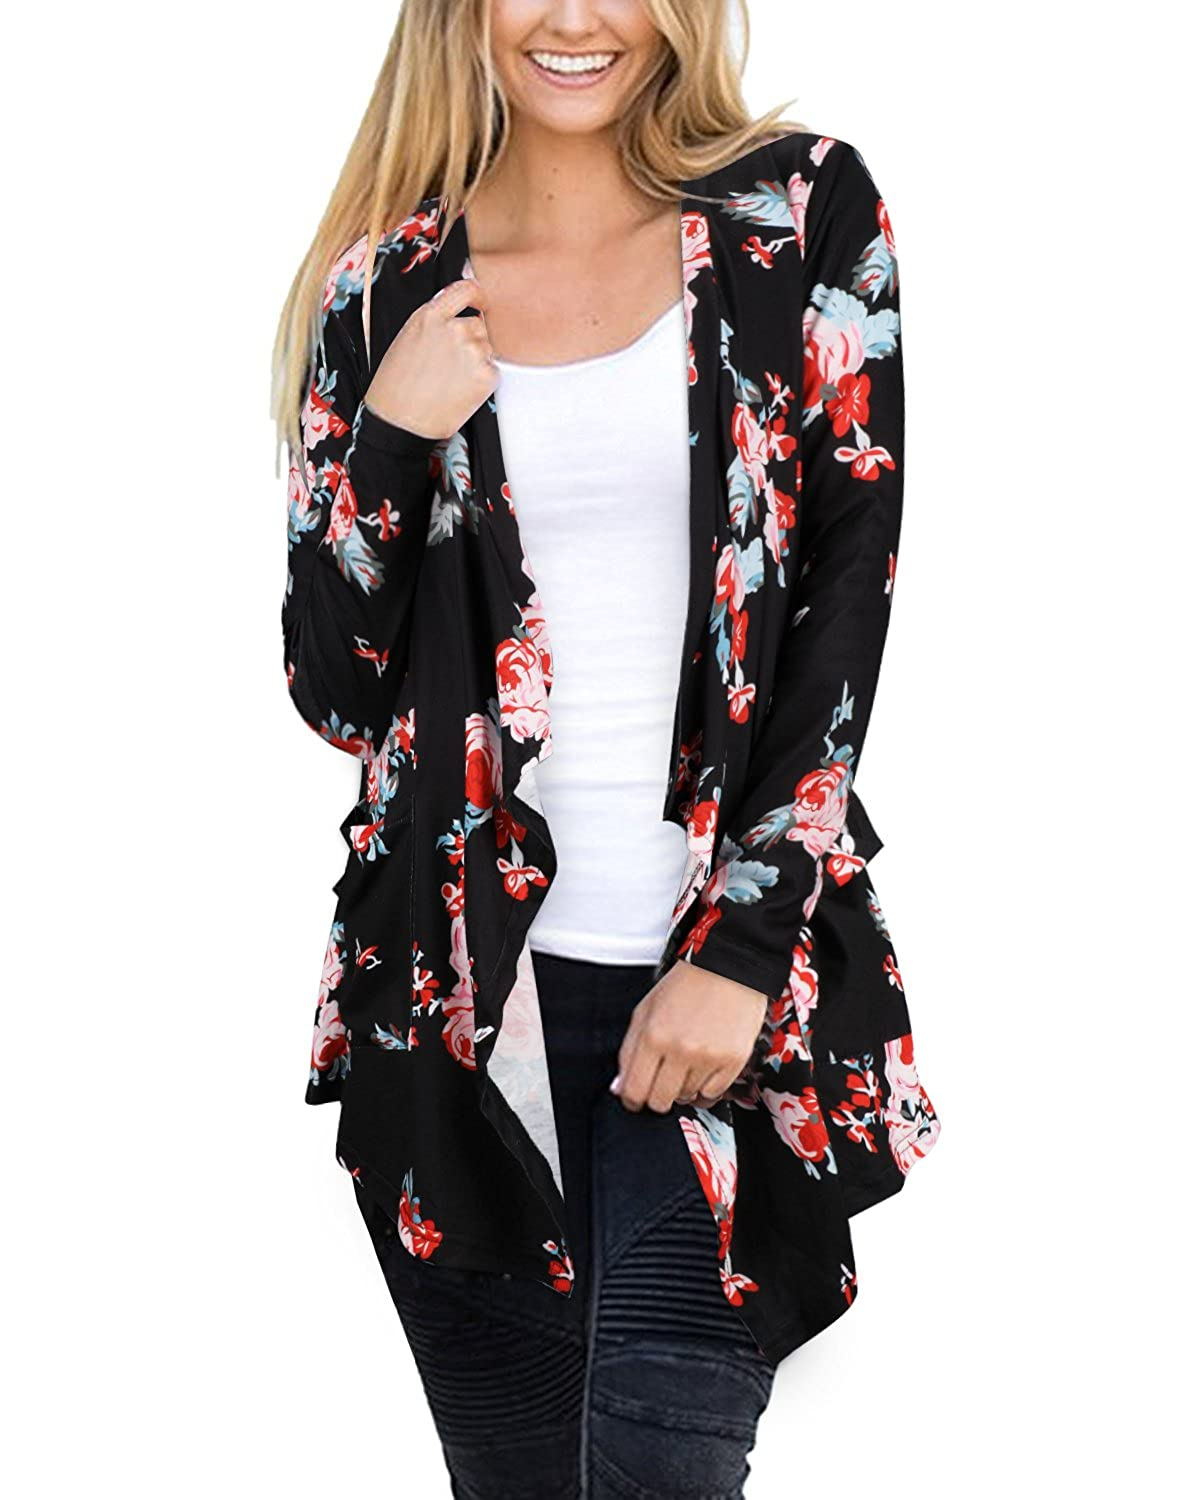 Soft and Comfortable The cardigan goes with different tops or dresses.Can  be worn casual or slightly dressy. Bust (S)33.1-35.4 inches b0f1db03e